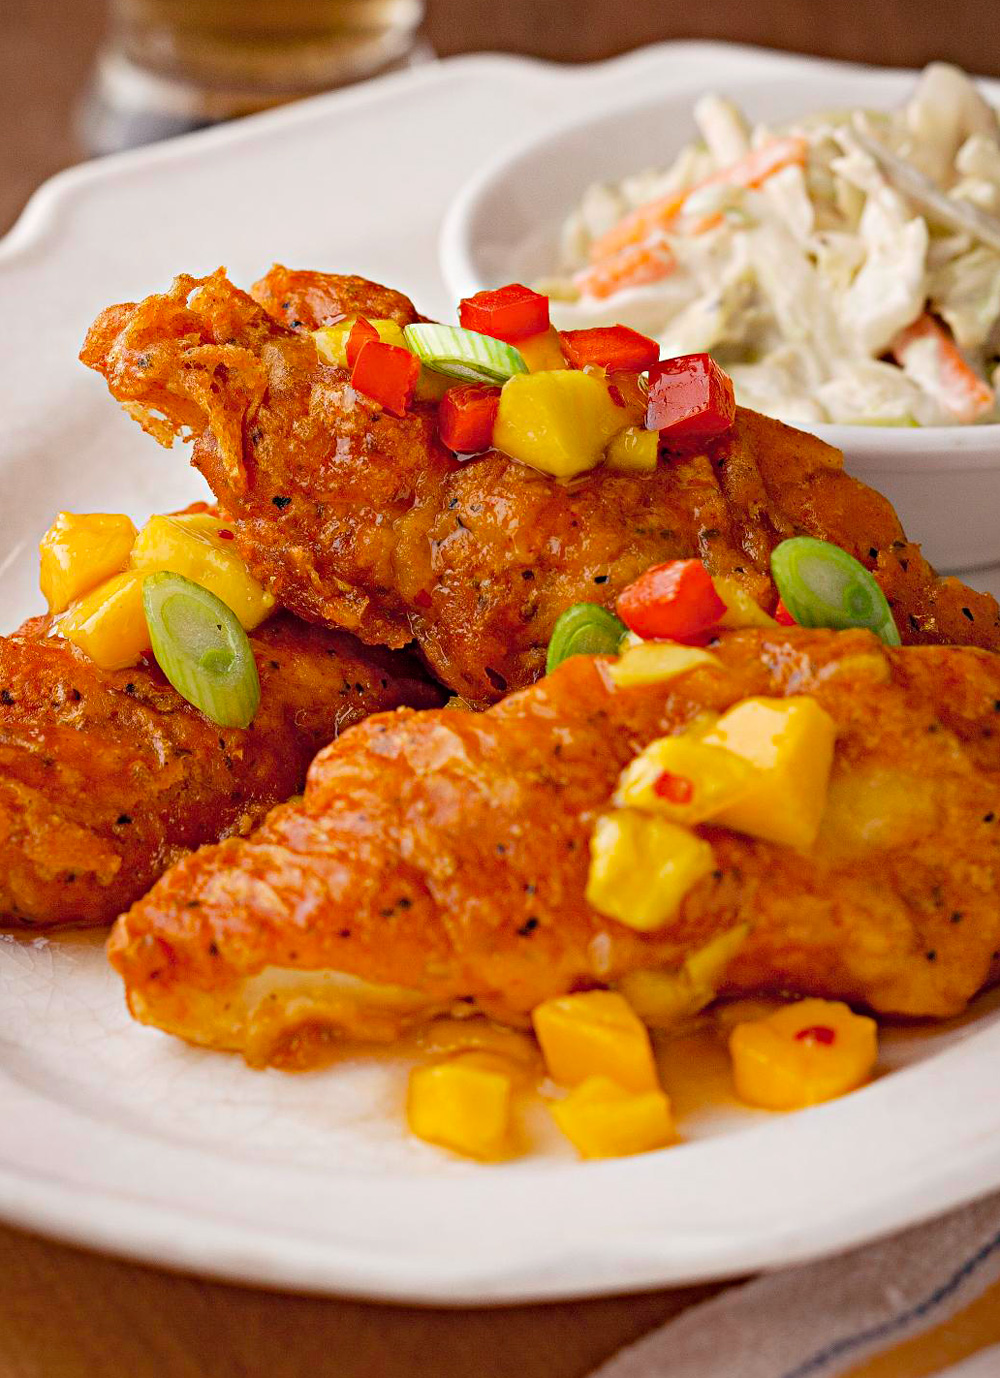 Crispy Beer-Batter-Fried Walleye with Mango Sweet-and-Sour Sauce